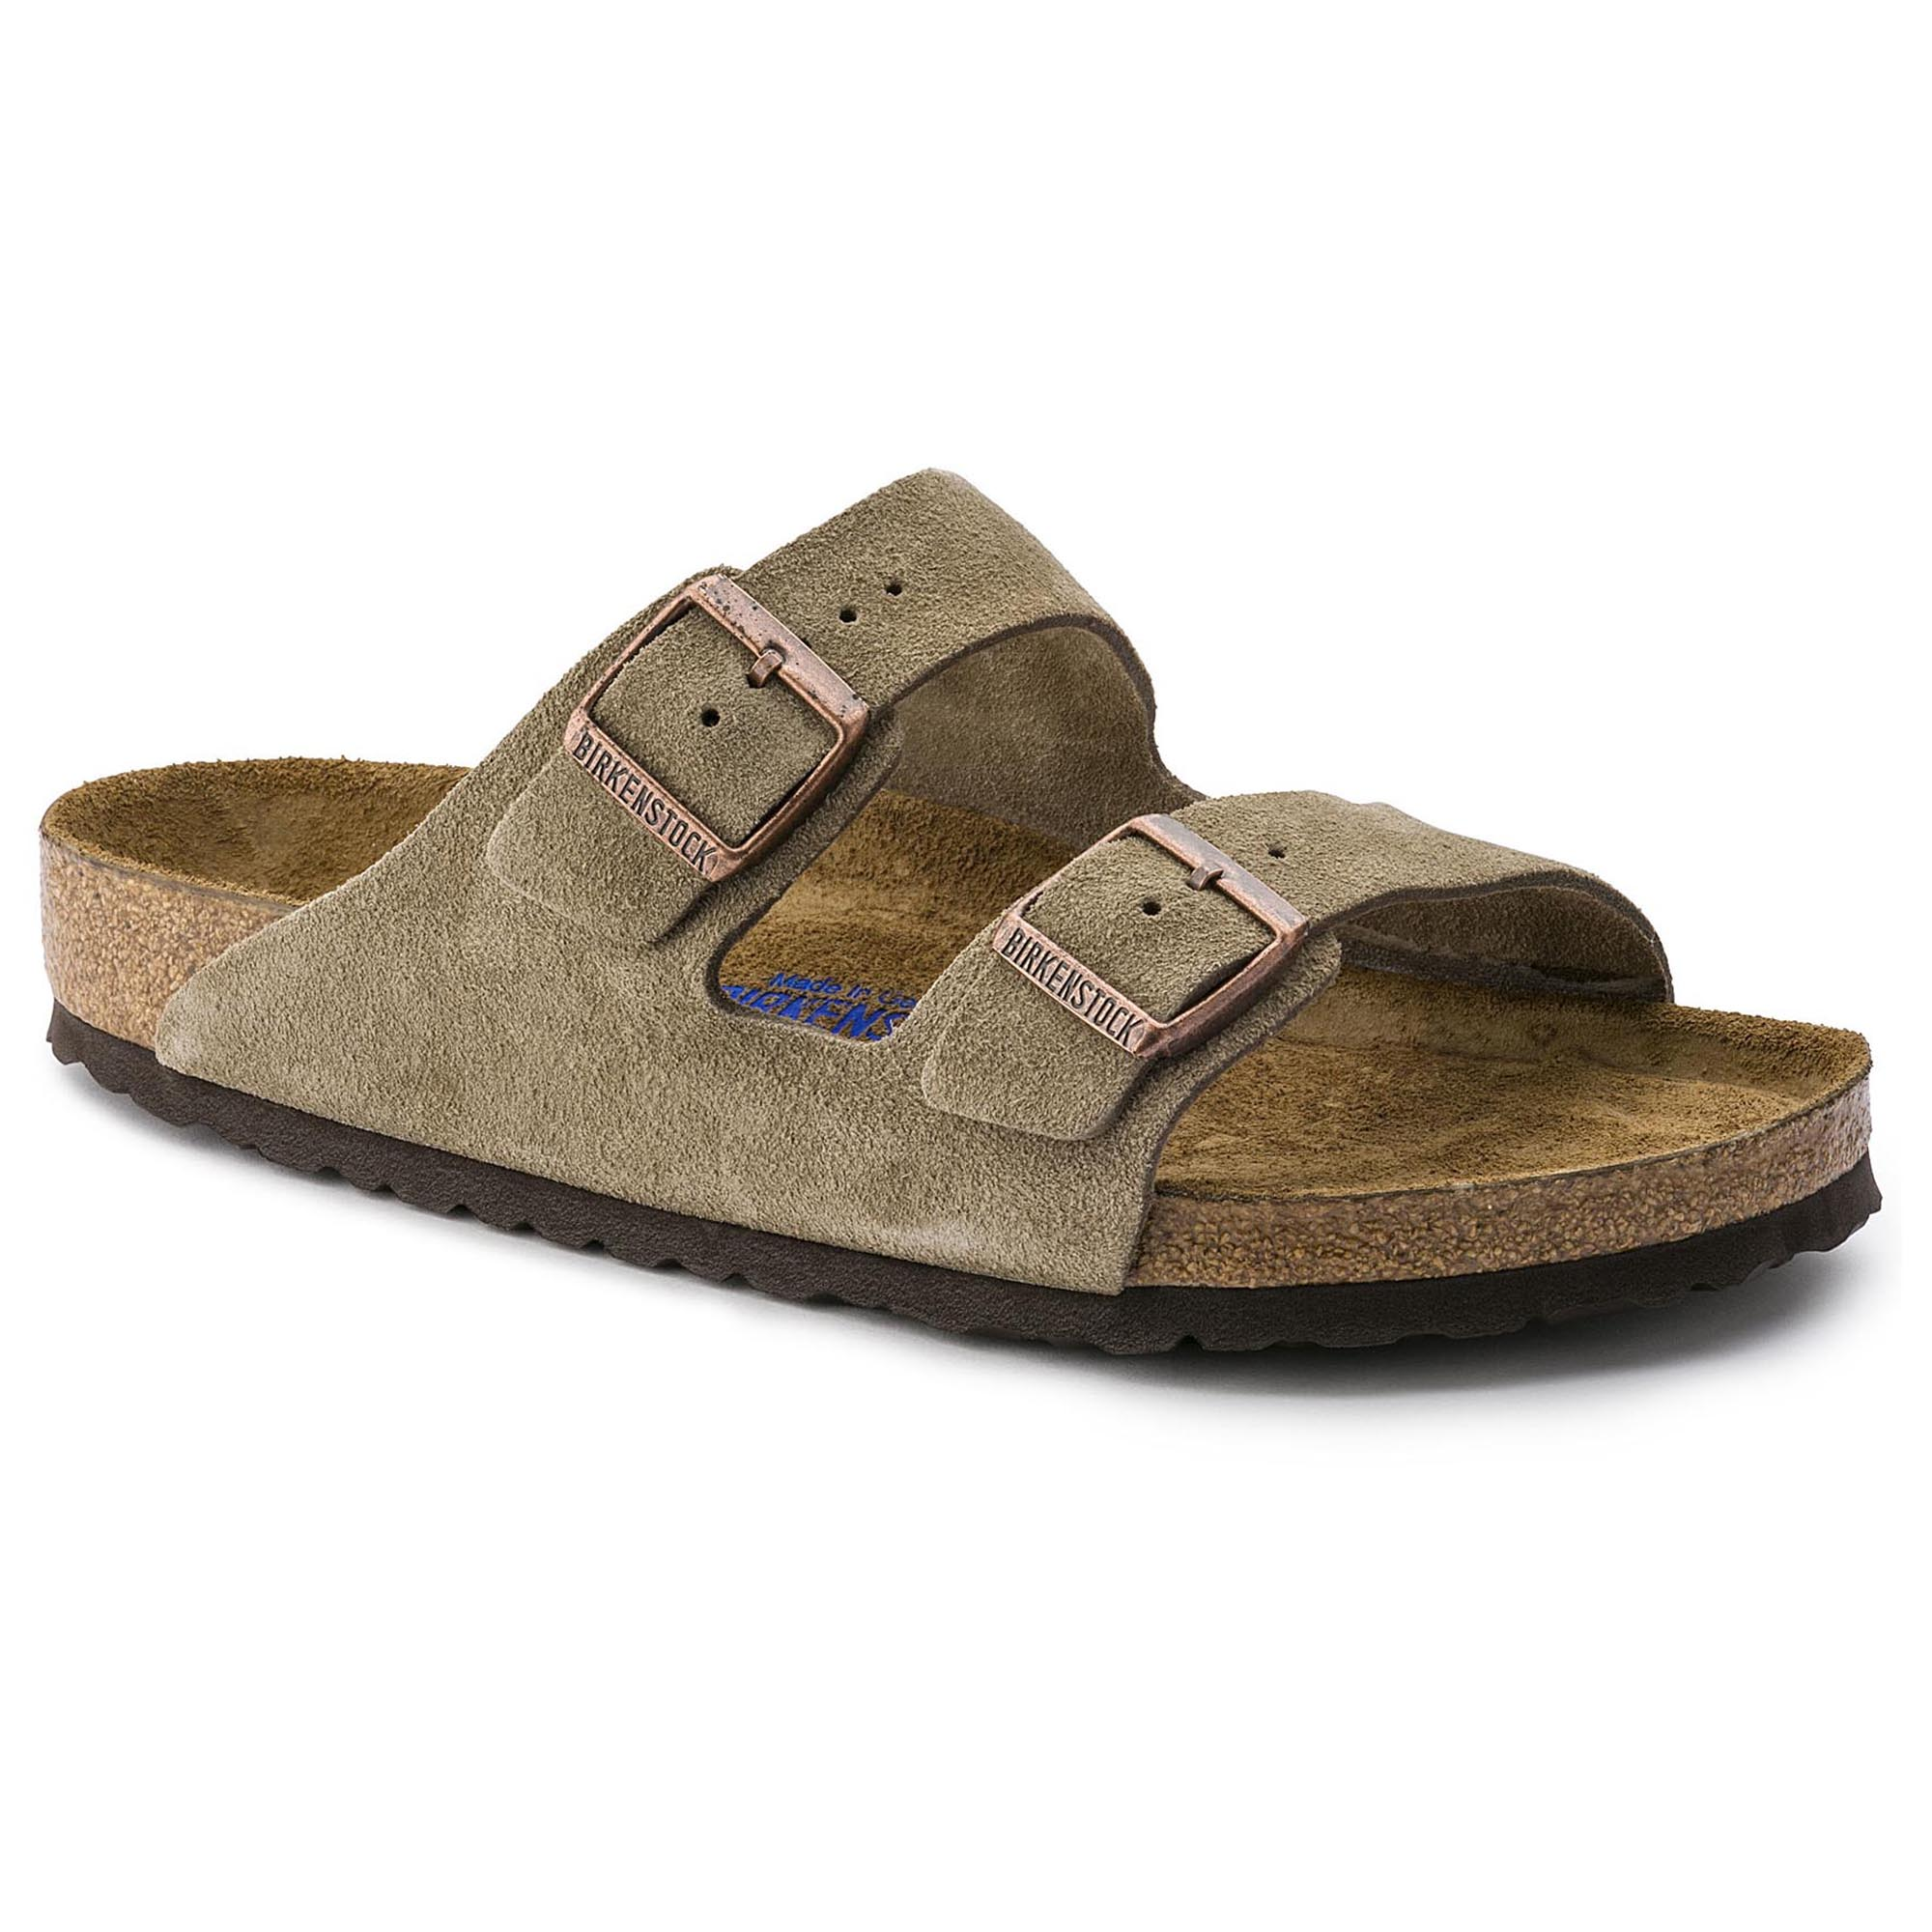 Arizona Suede Leather Taupe  a07c46b63c67